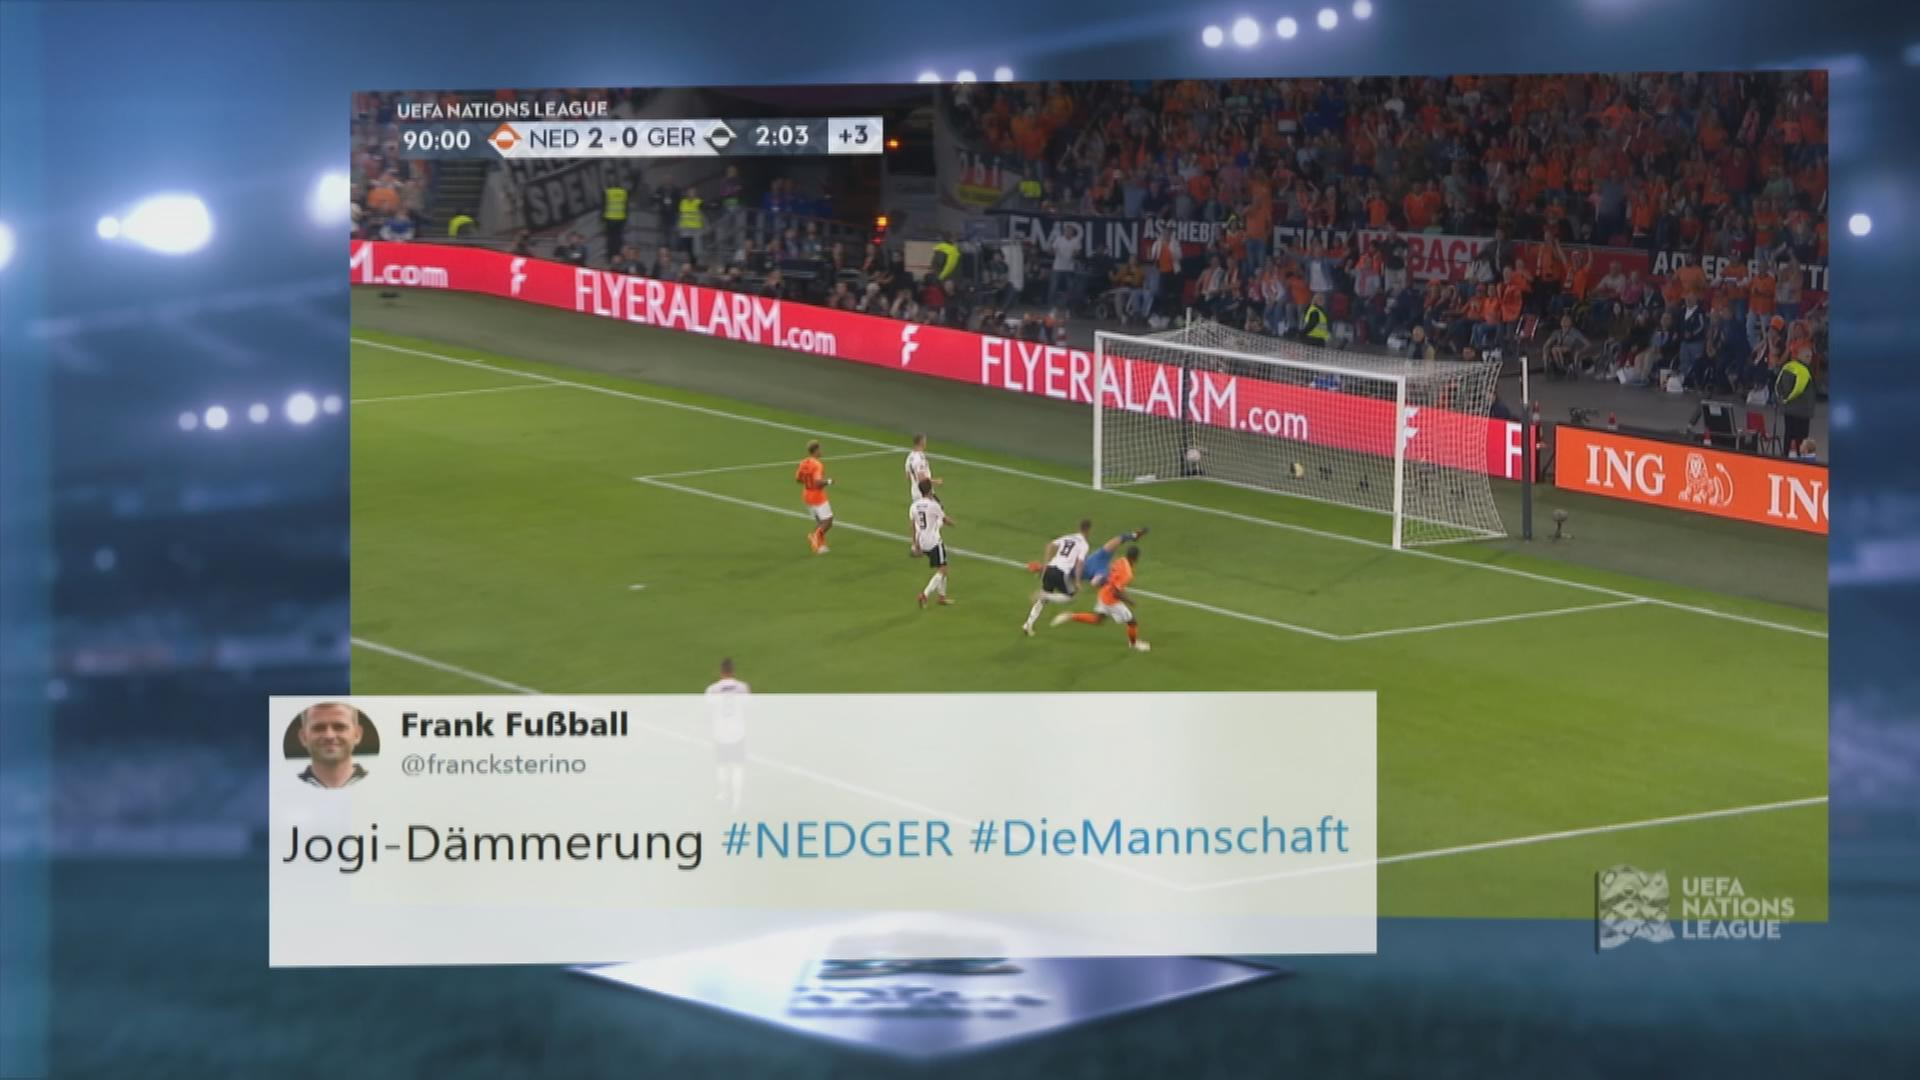 Holland Deutschland Die Highlights Zdfmediathek